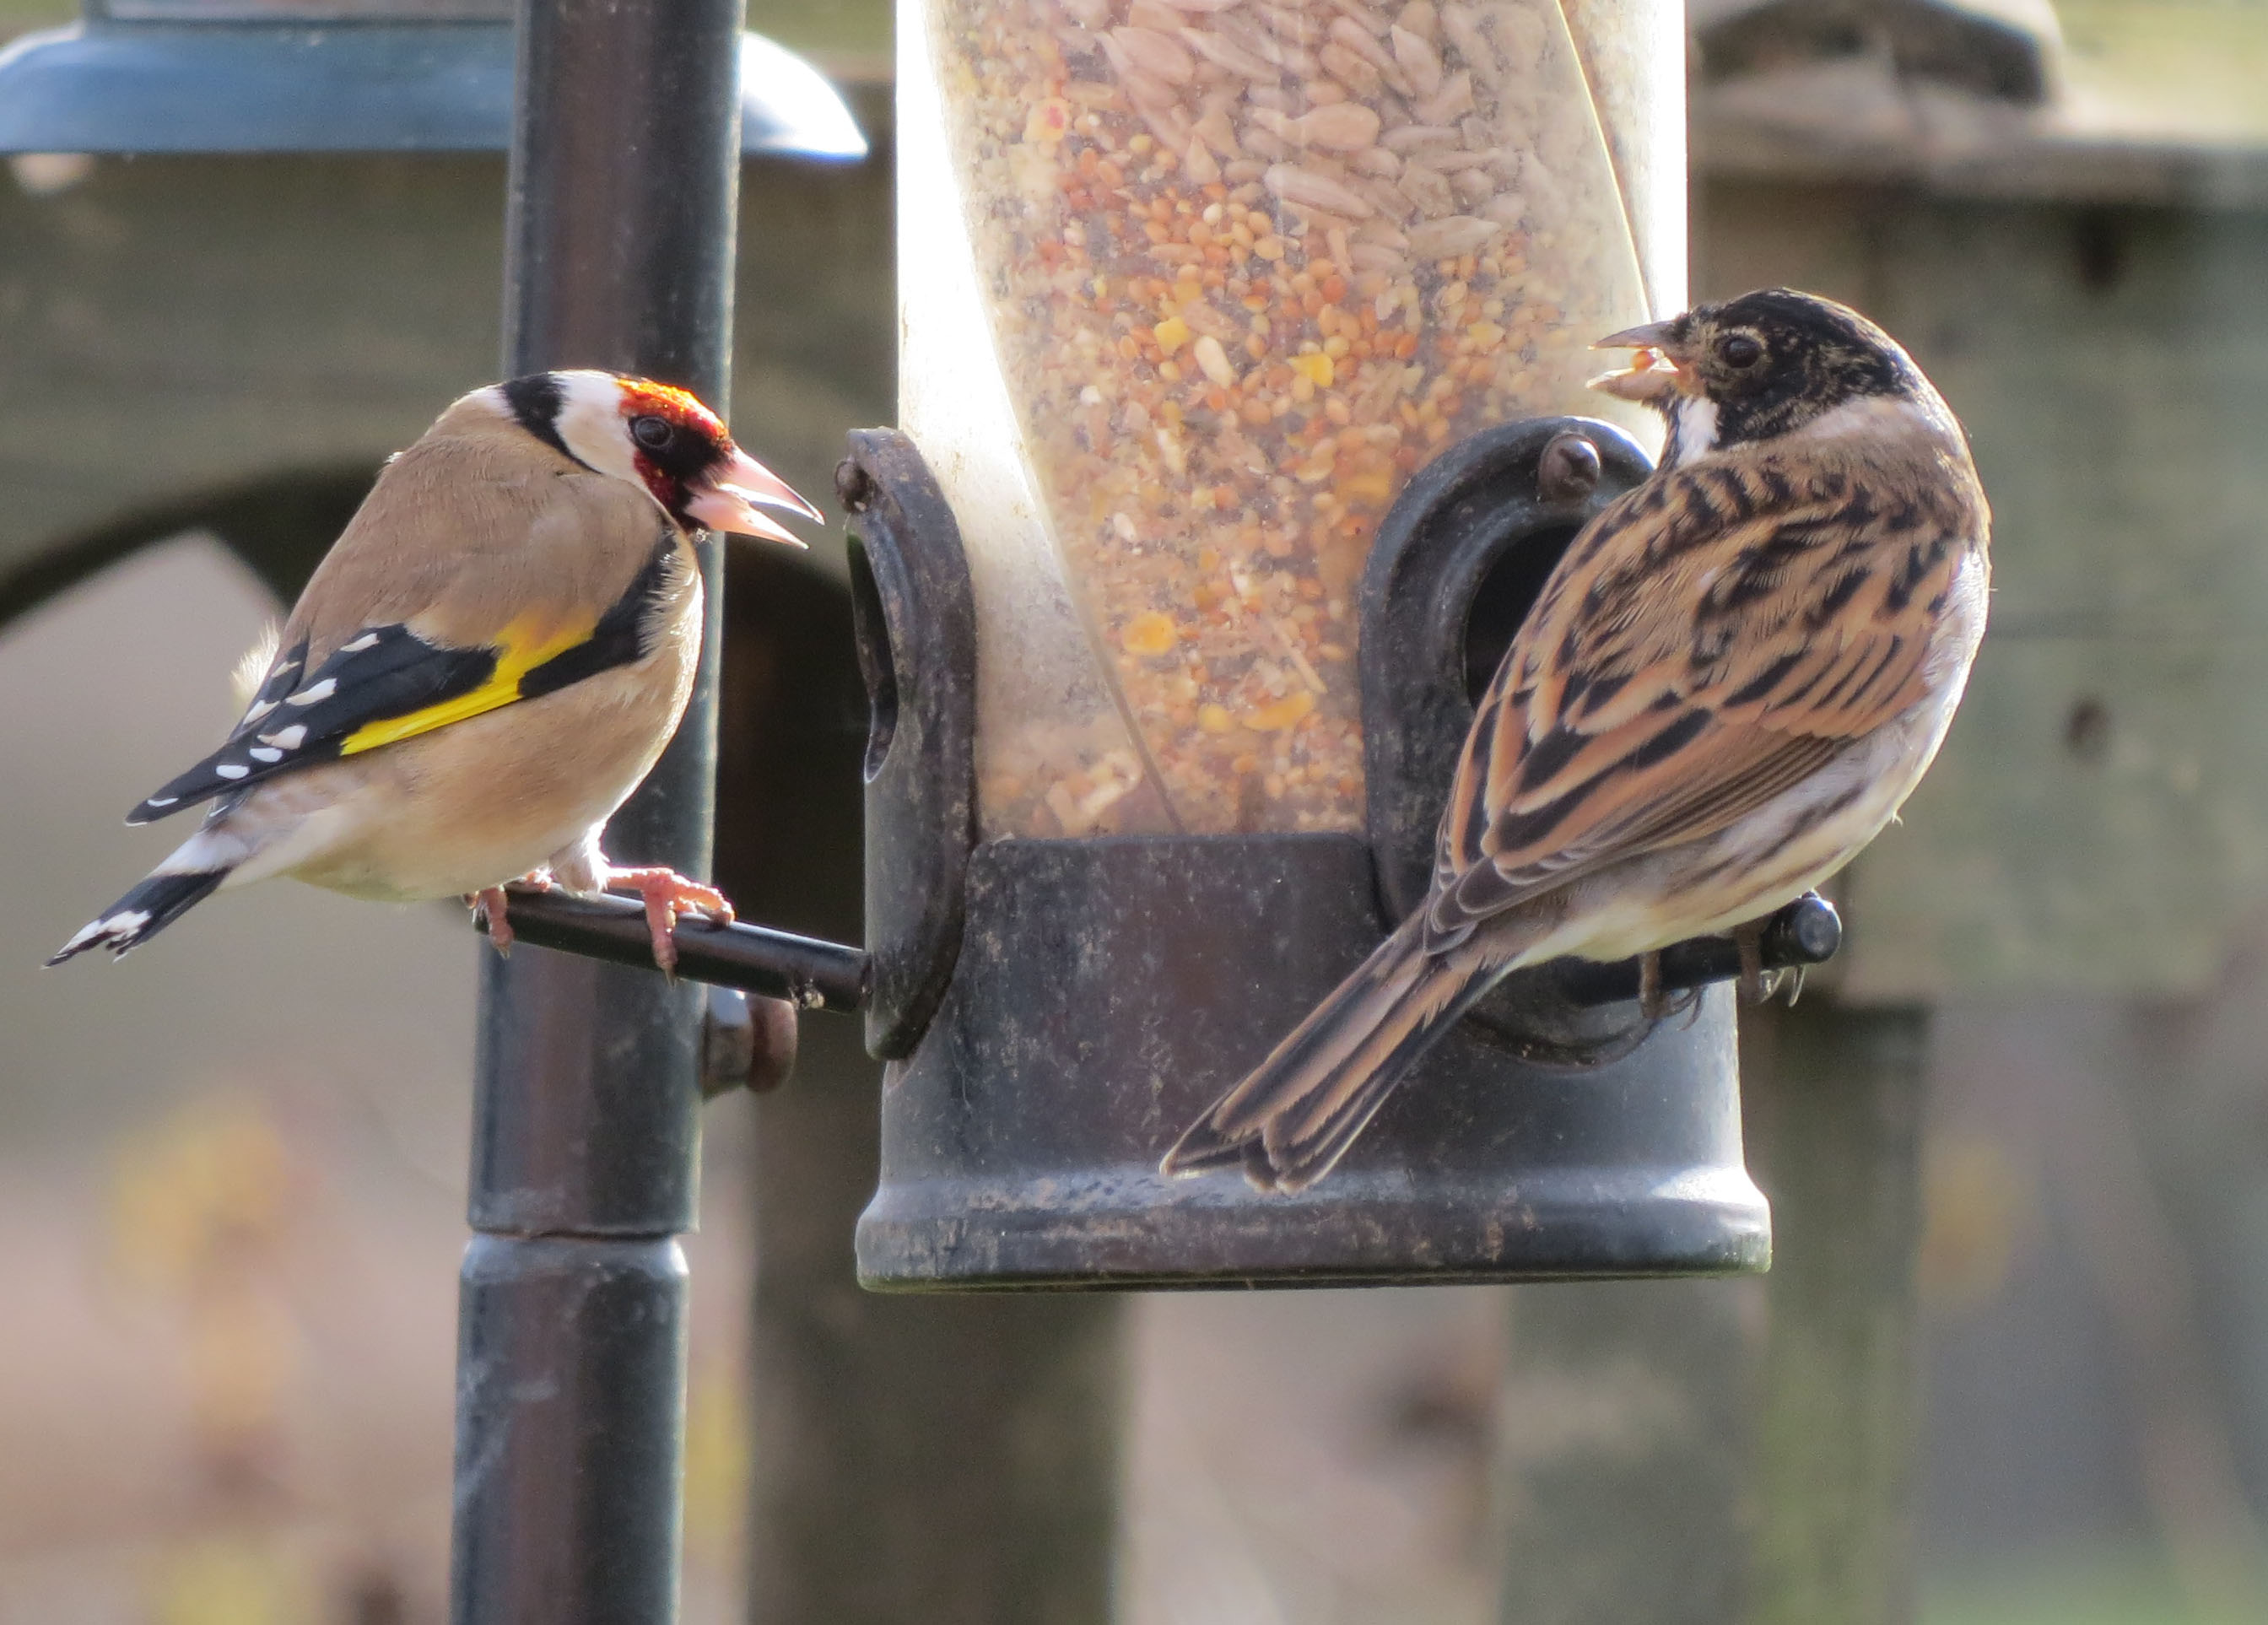 goldfinch and reed bunting eating wild bird food from a bird feeder